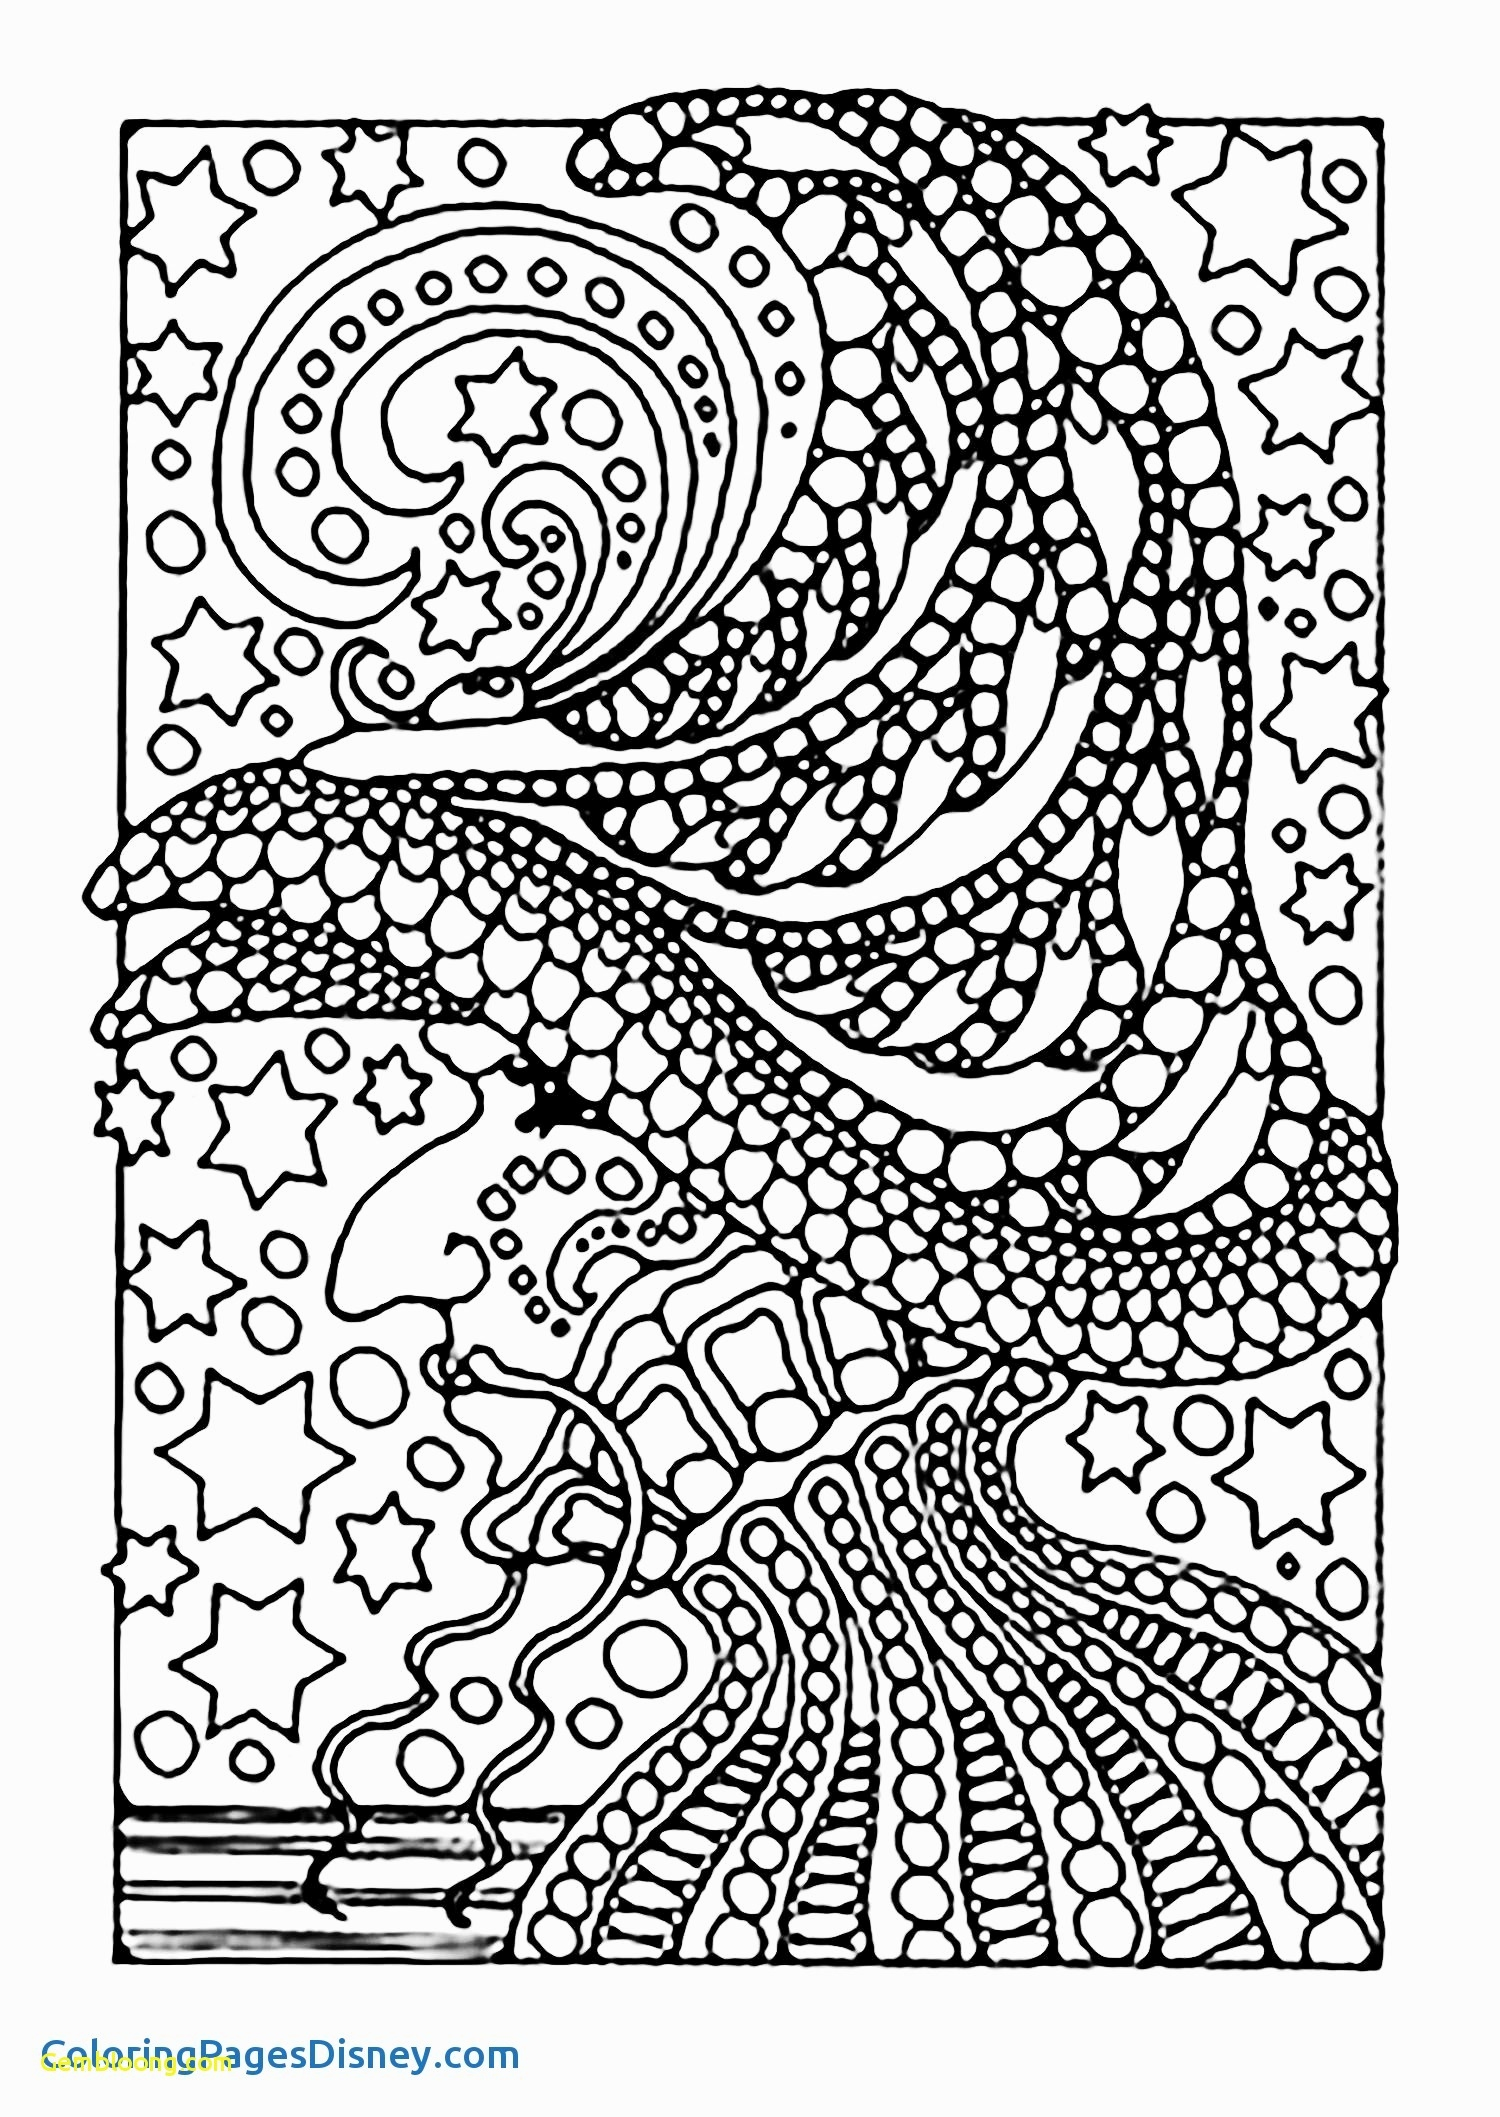 Mia and Me Malvorlagen Einzigartig New Coloring Book Coloring Pages